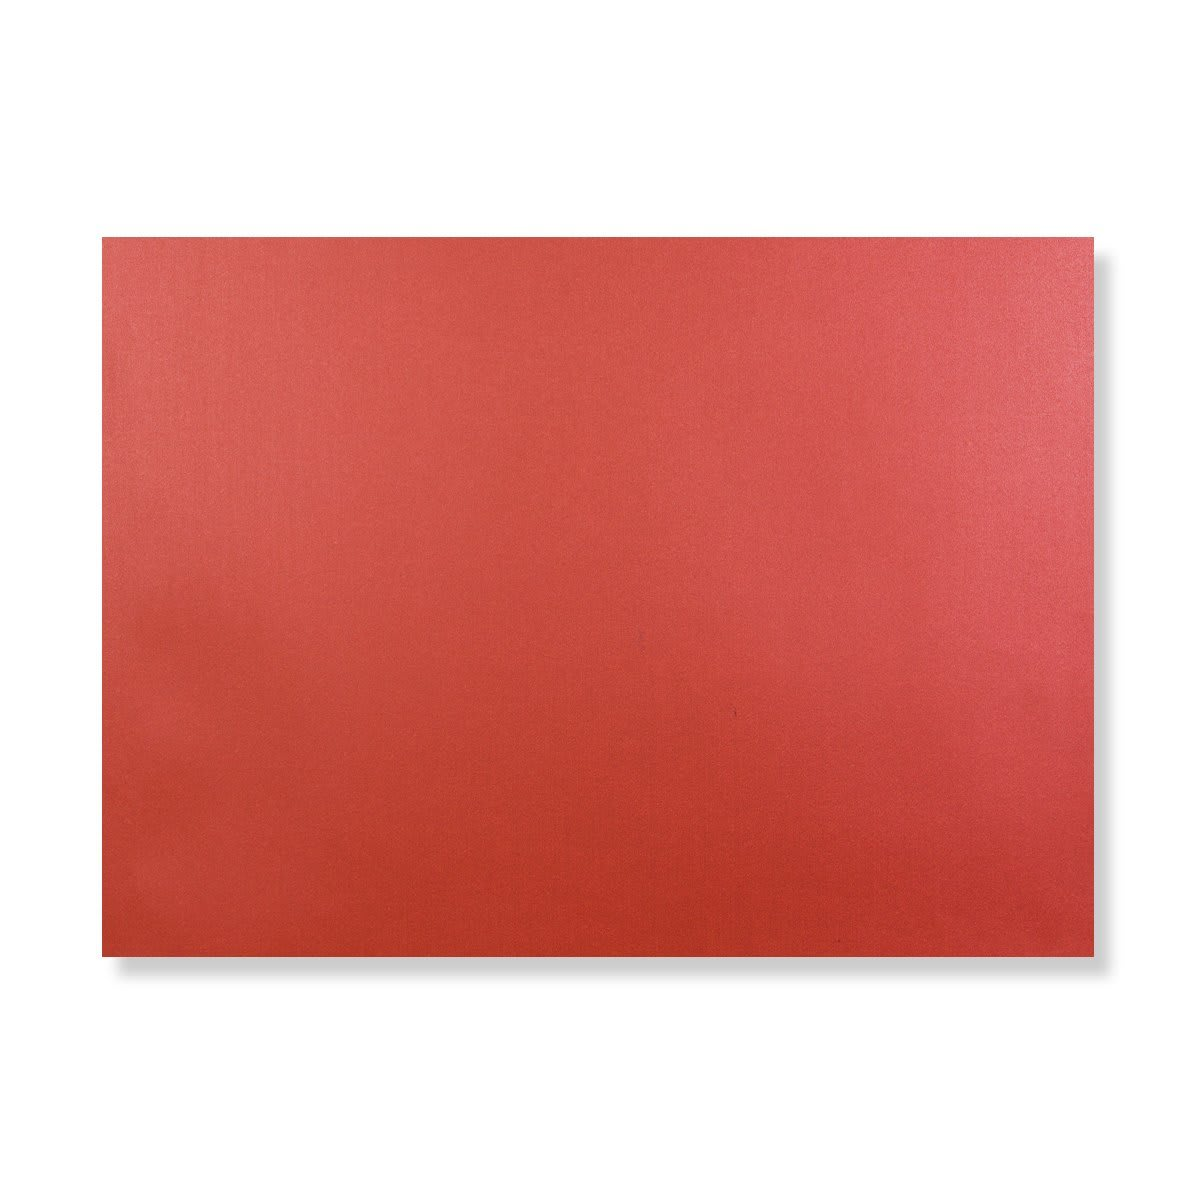 C4 CARDINAL RED PEARLESCENT ENVELOPES